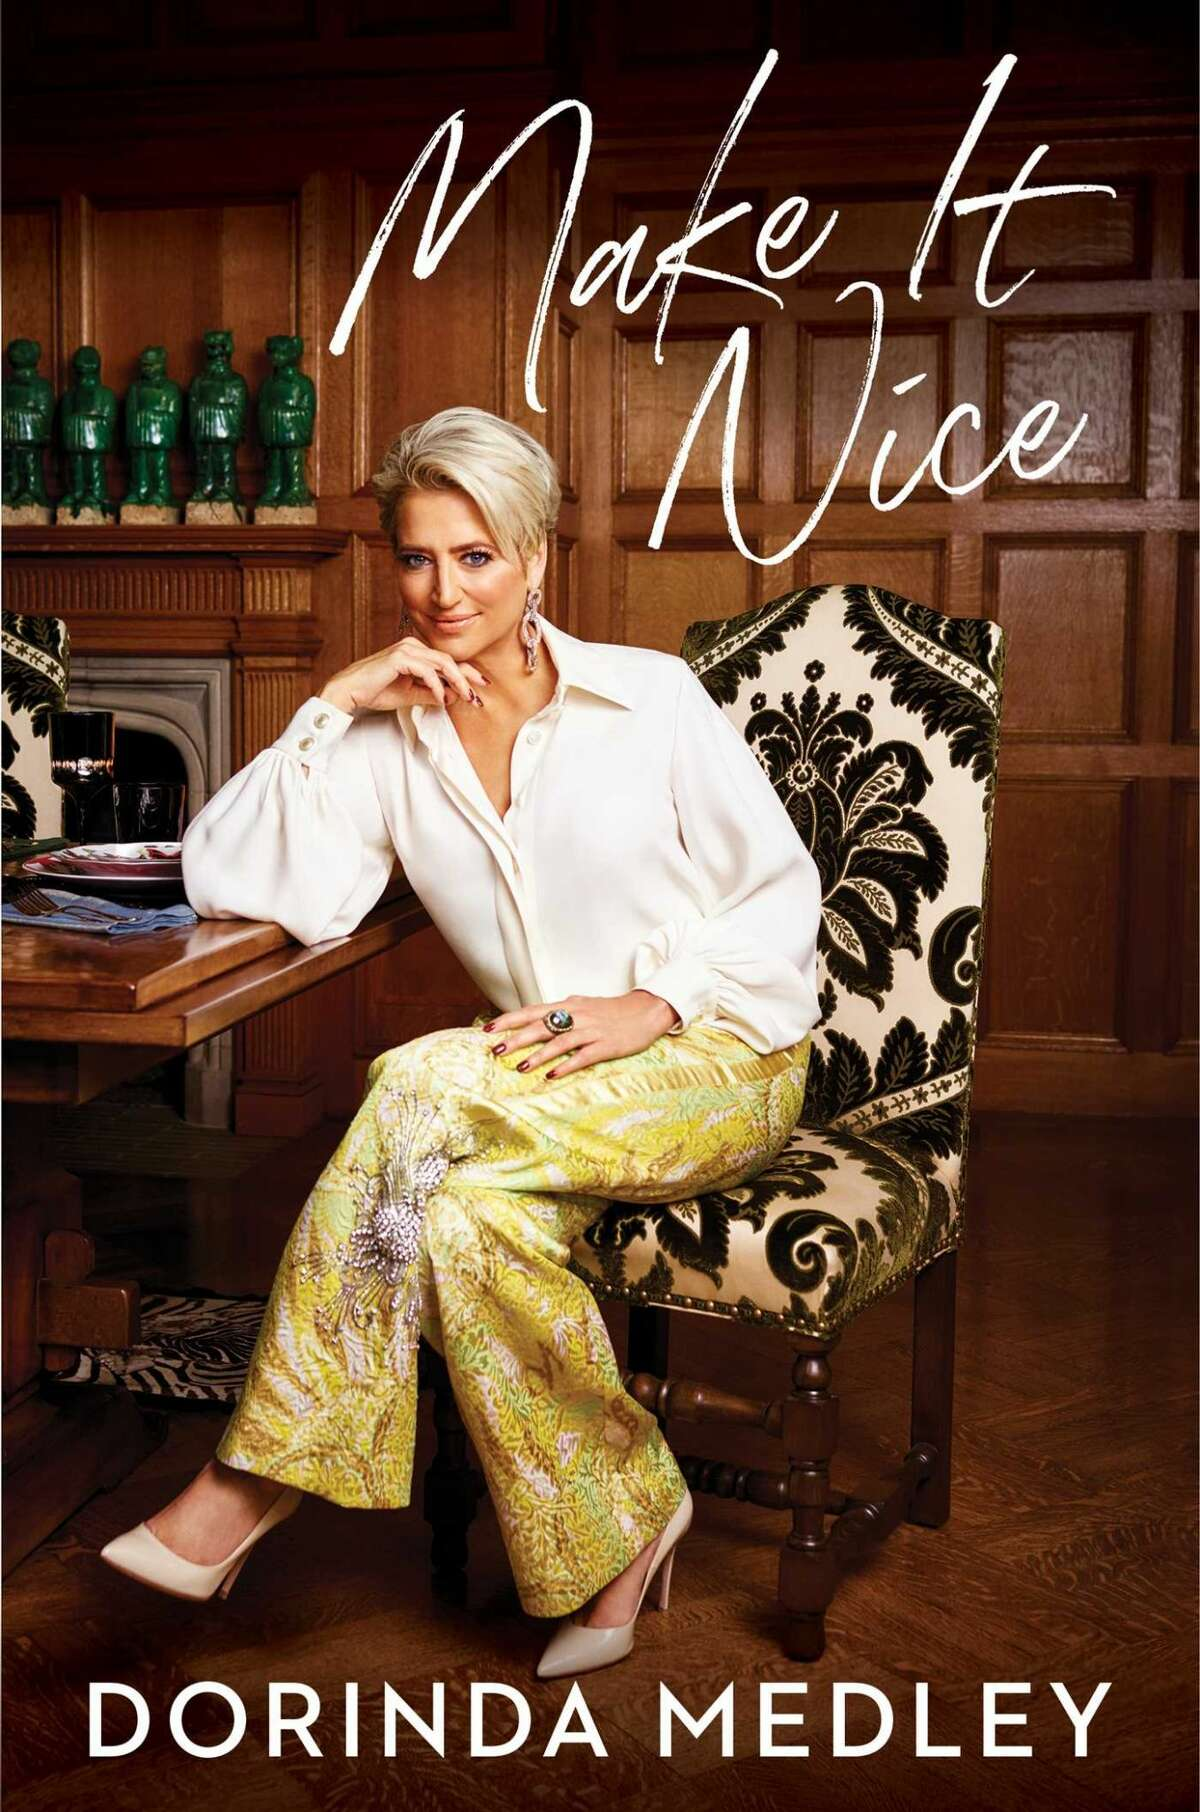 """""""Real Housewives of New York"""" co-star Dorinda Medley will host a dinner and discuss her latest book at Hancock Shaker Village in hancock, Mass., on Saturday, Sept. 11, 2021."""